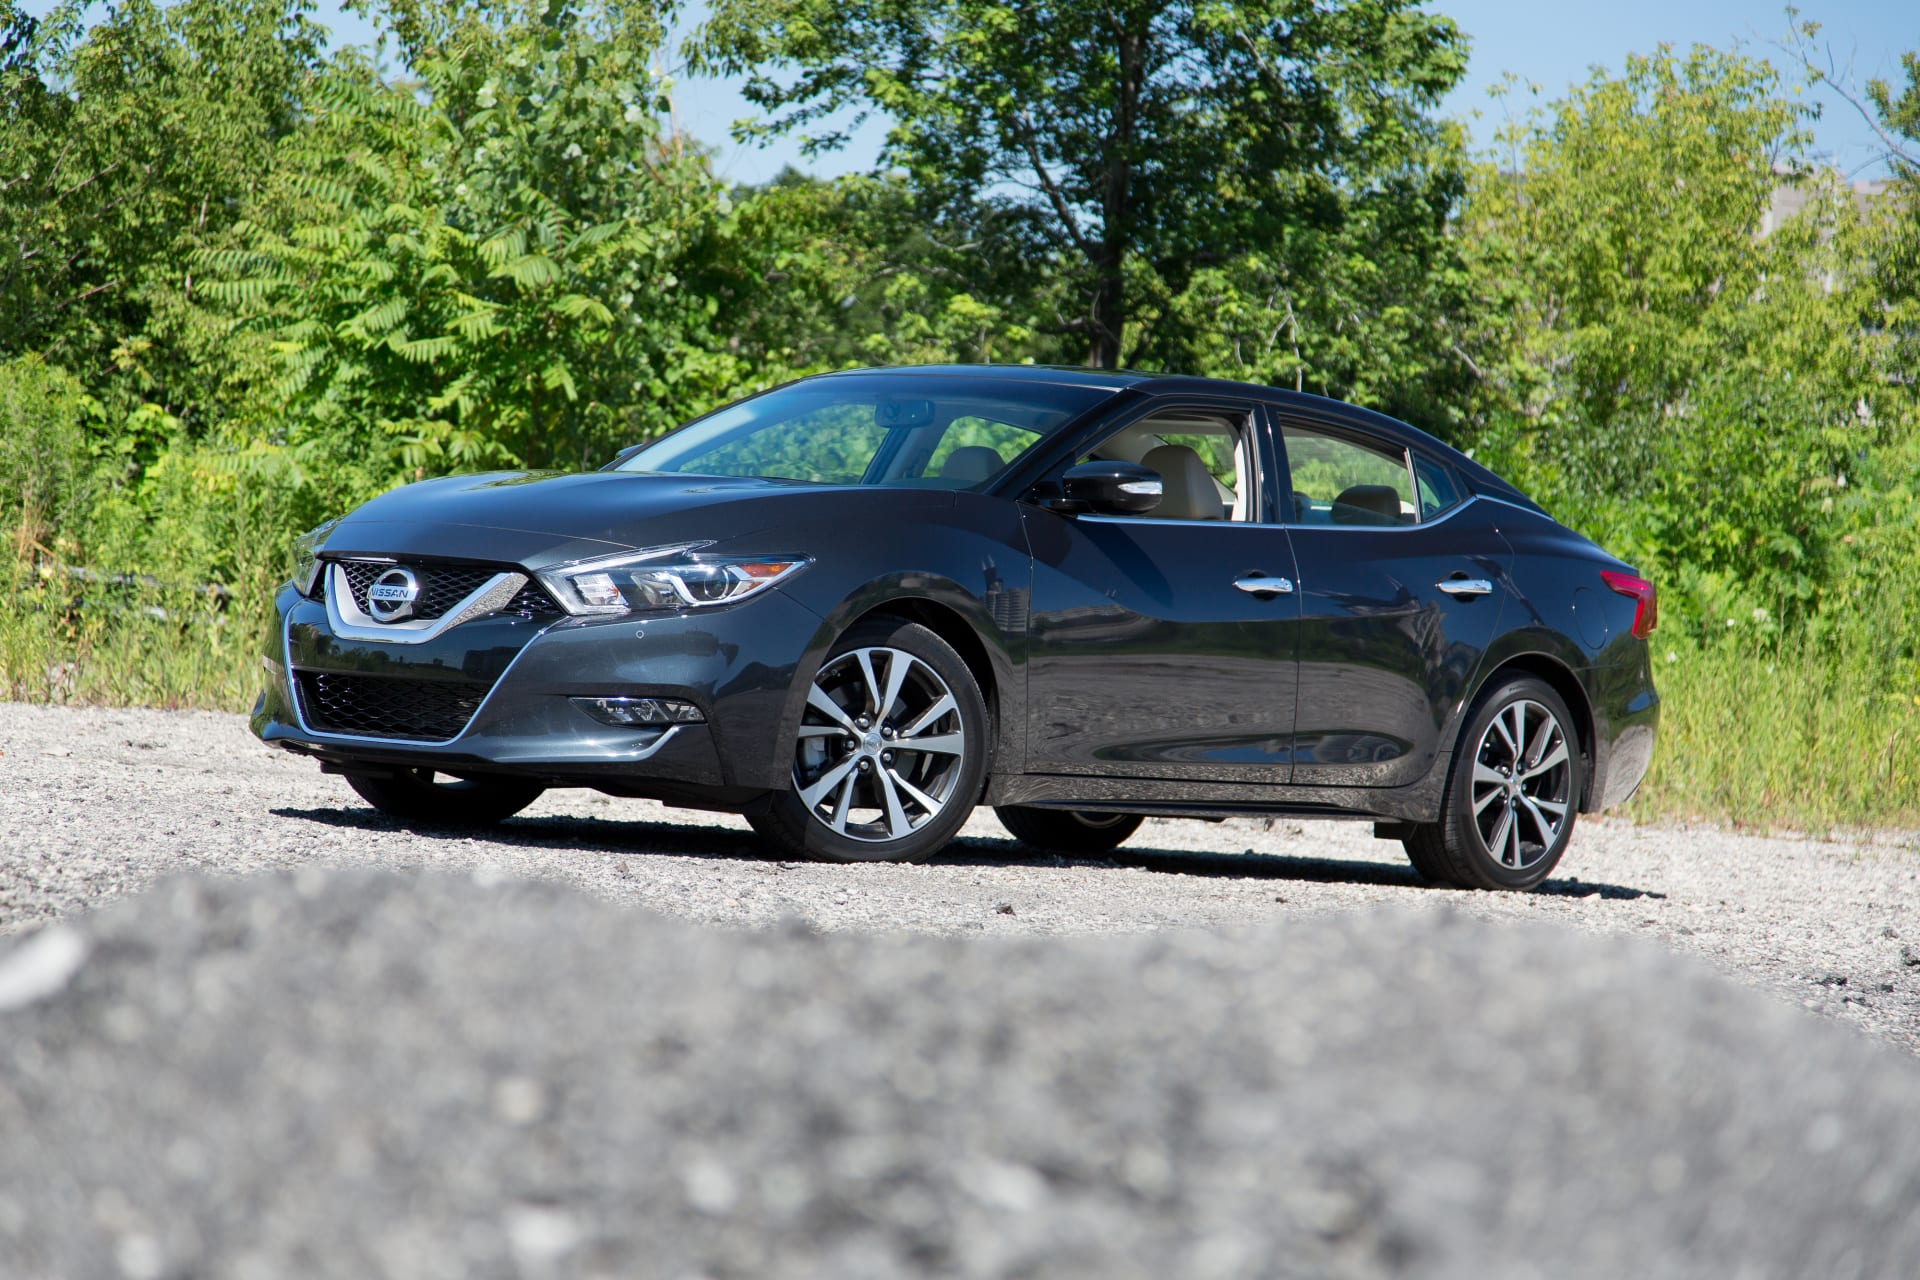 2015 Nissan Maxima >> 2015 Nissan Altima 2016 Nissan Maxima Brake Issue News